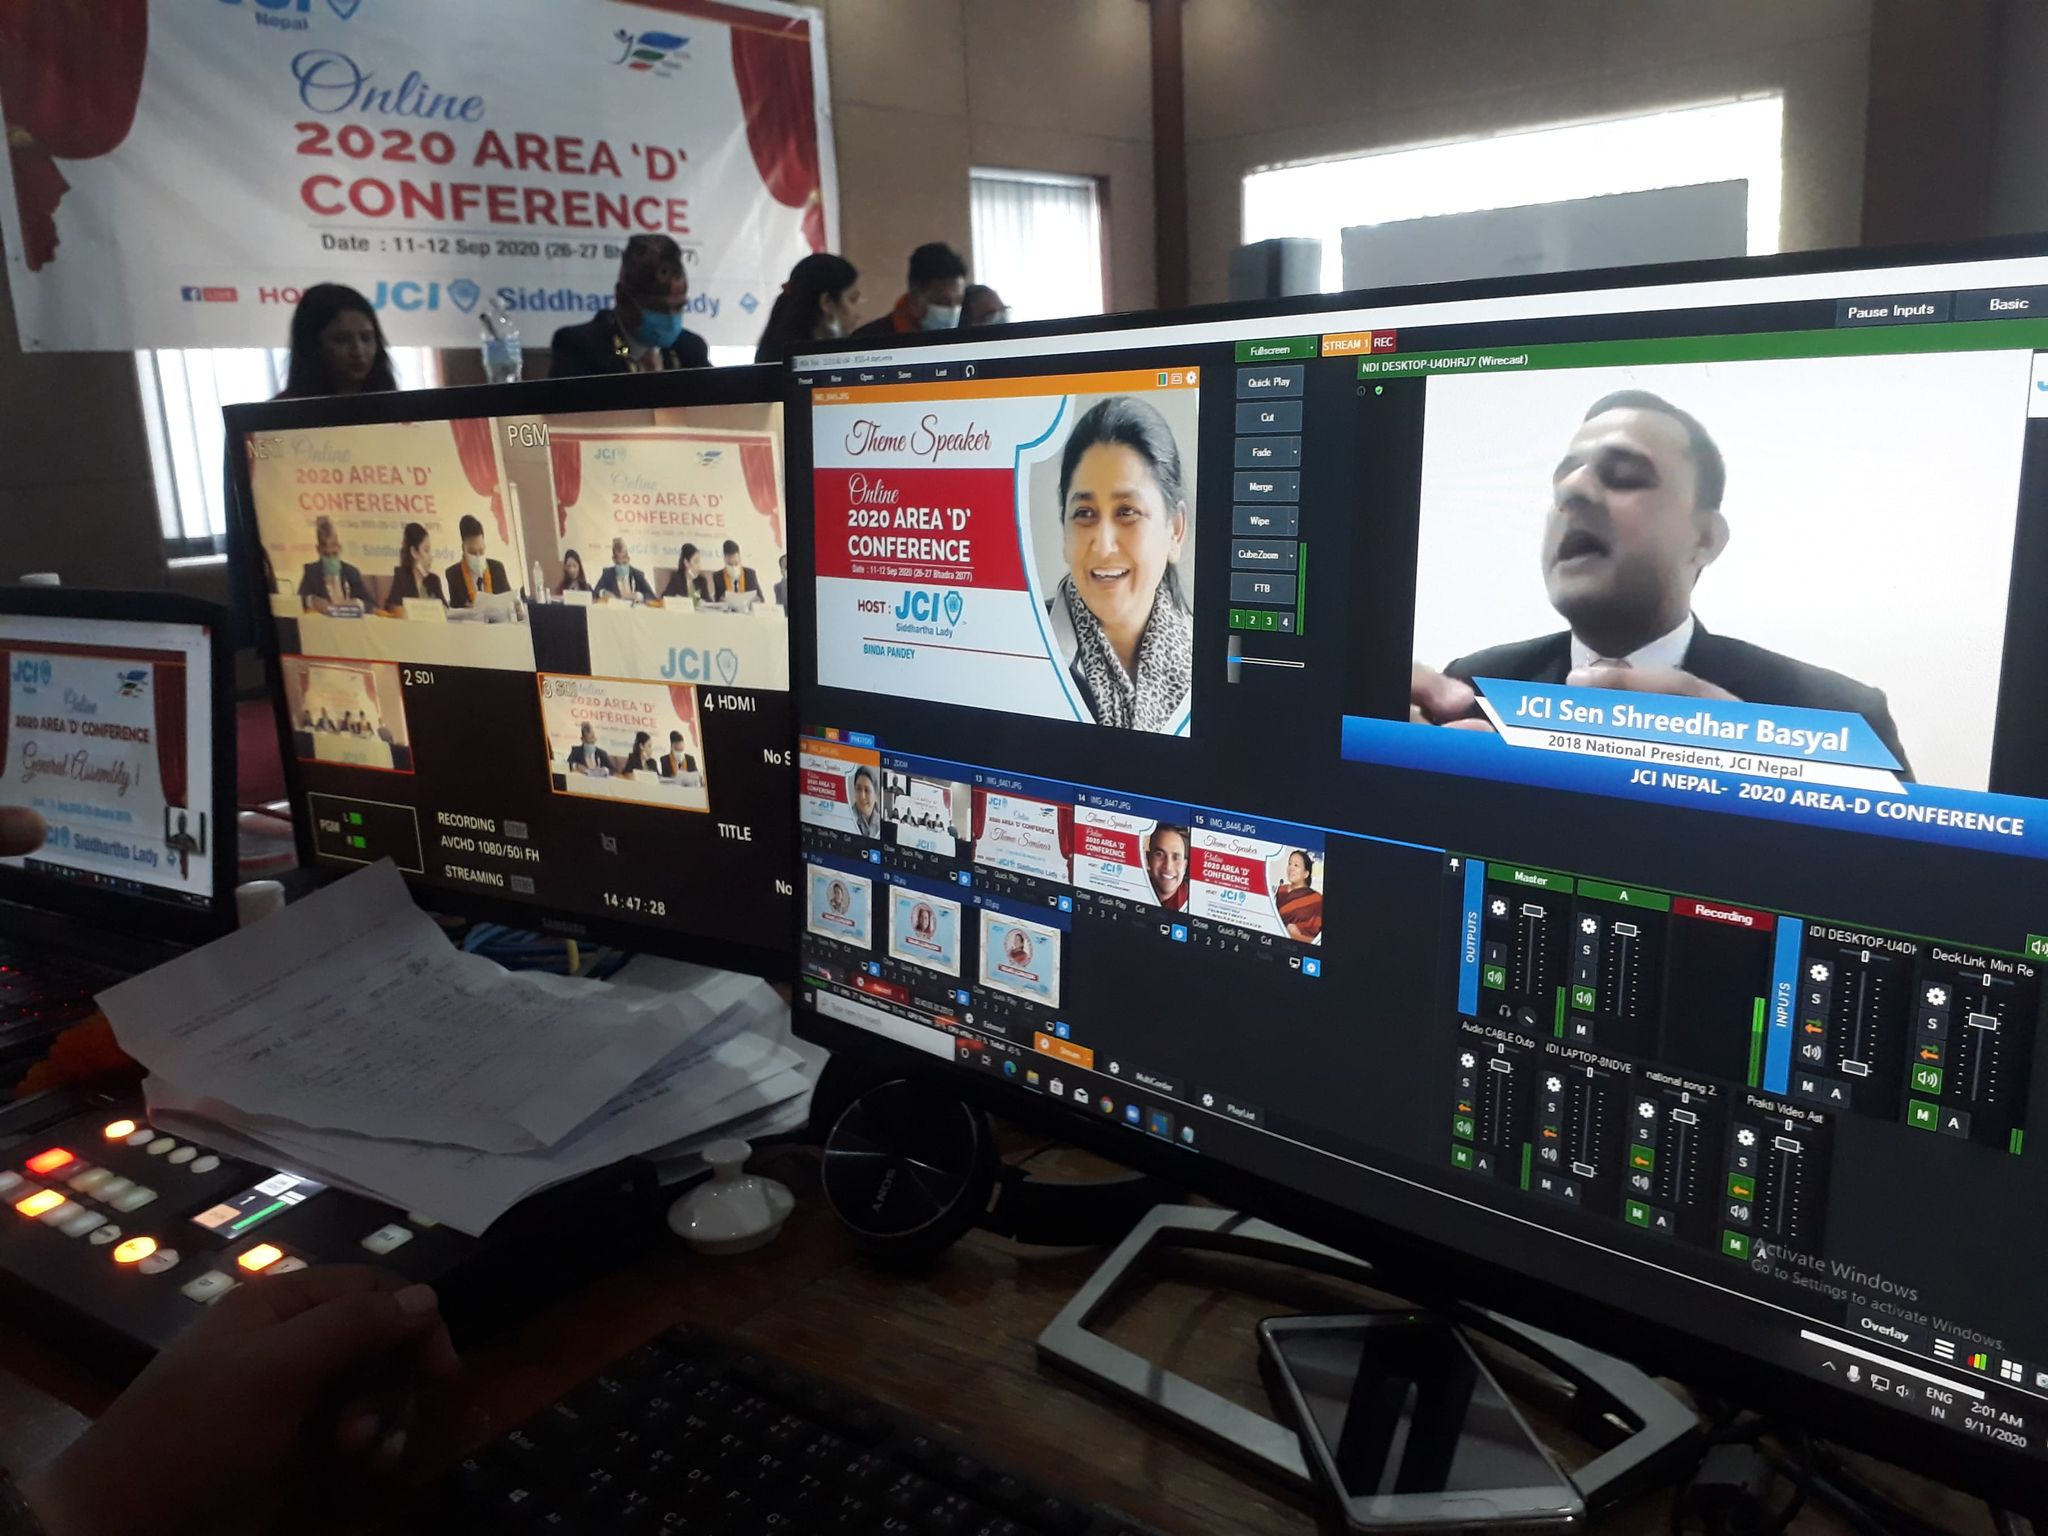 Virtual Conference Live Streaming